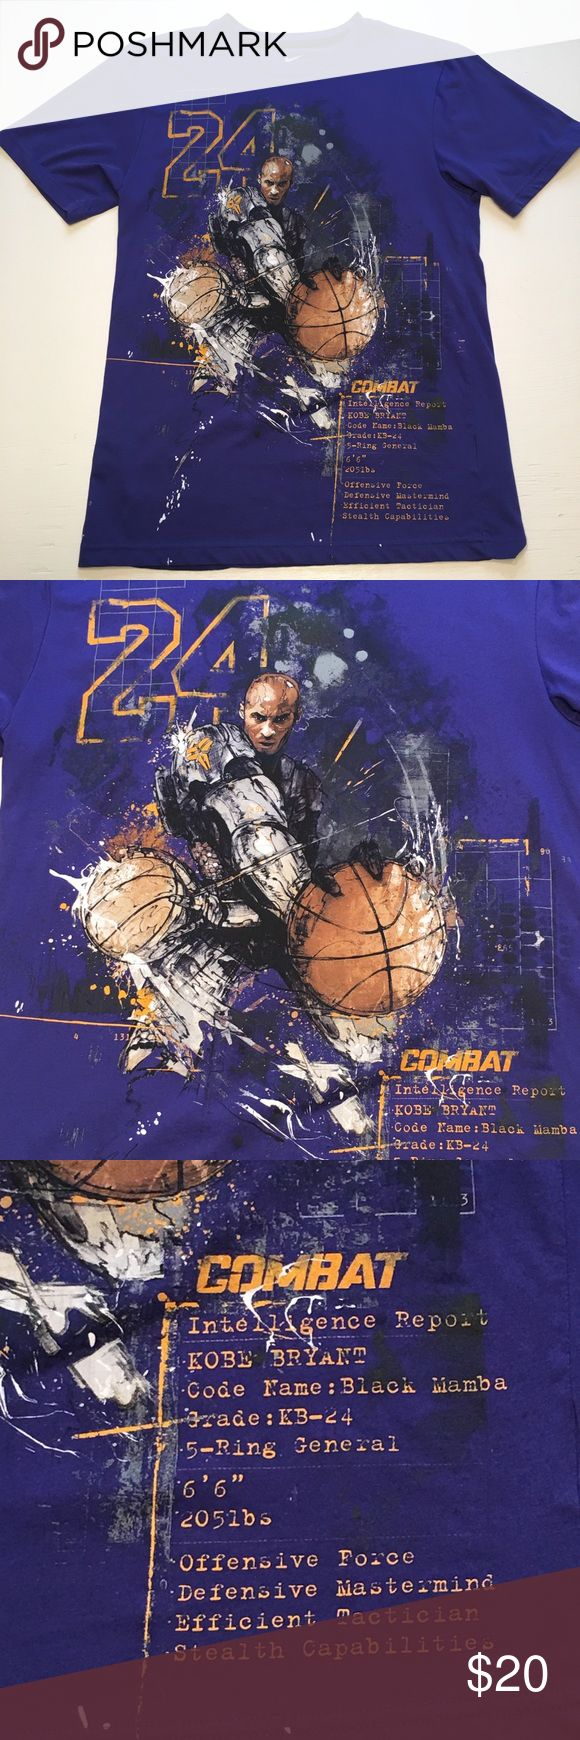 Nike Kobe Bryant Black Mamba Dri-fit Purple Tee NWOT Bought it for my son but he never worn it! Nike Dri-fit super soft material. Kobe Bryant Black Mamba collection. Kobe graphic on front & Black Mamba logo on center back. FLAW-there is a tiny hole on back of collar where the price tag was. Other than that it's in great condition. Size adult S  *No trades or try on's. *Smoke free home.  Please feel free to ask me any ?s & be sure to bundle all your likes for an AH-mazing deal!!! F137 Nike…